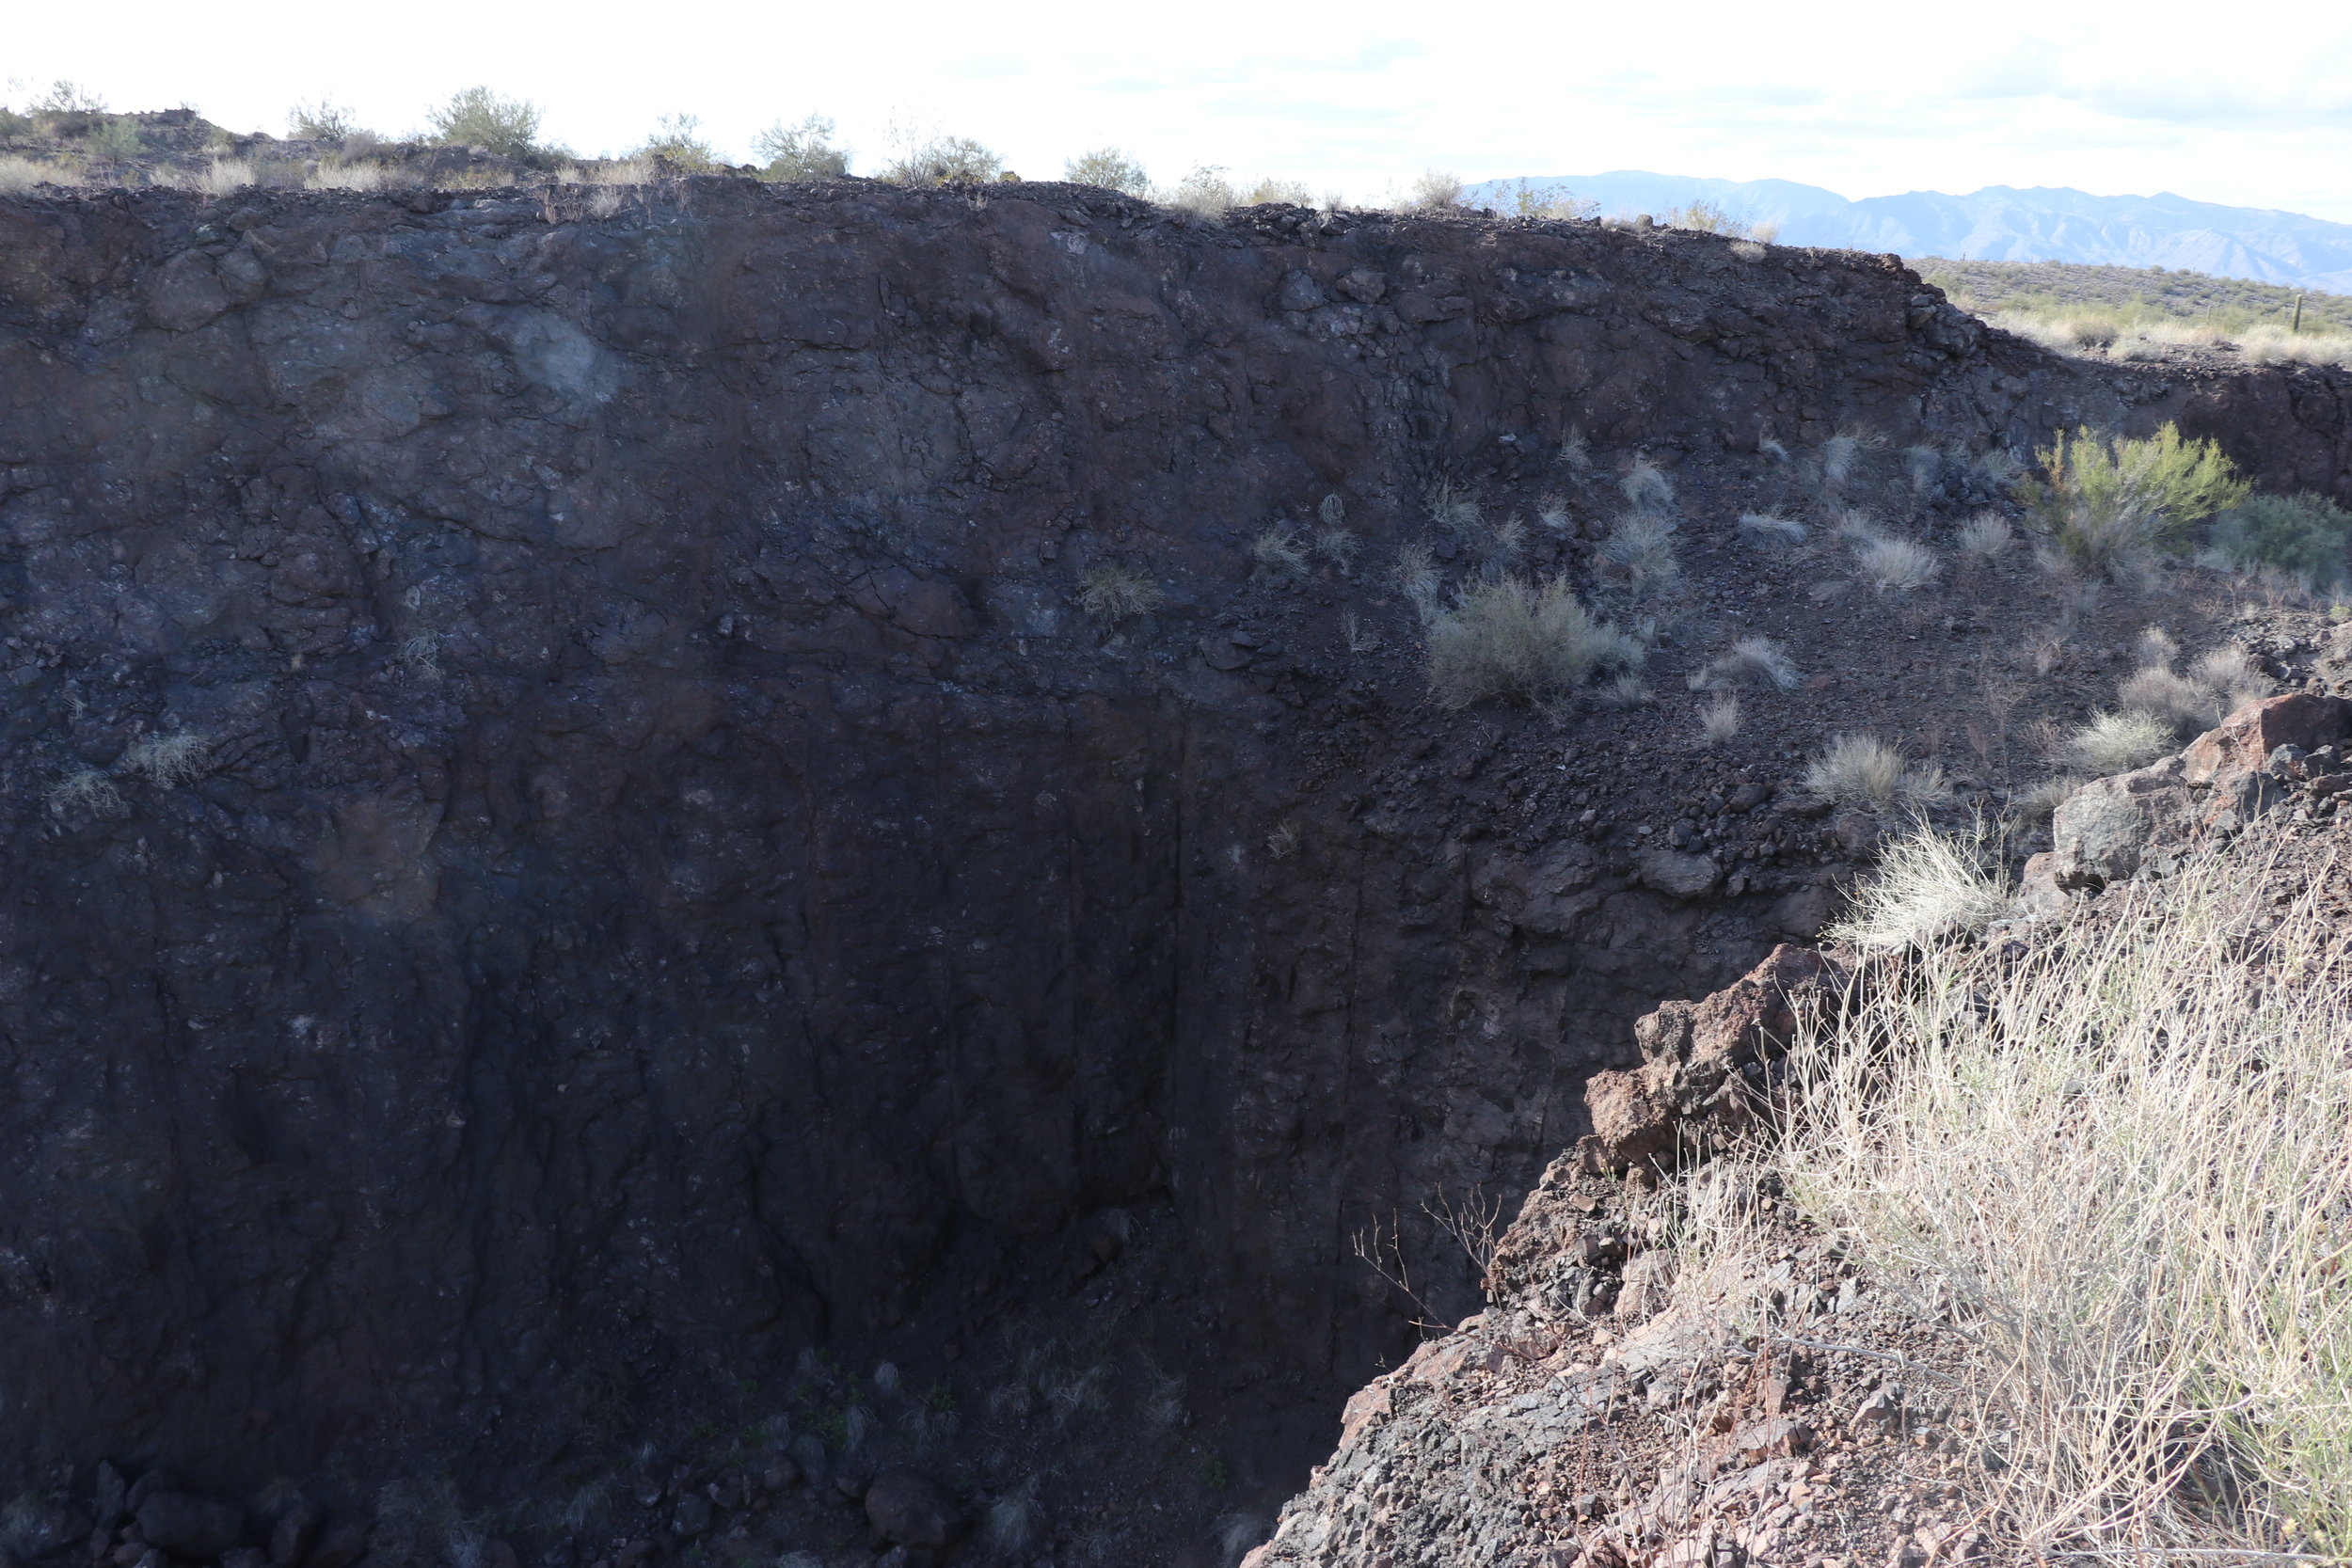 The manganese pit just south of the Purple Pansy.